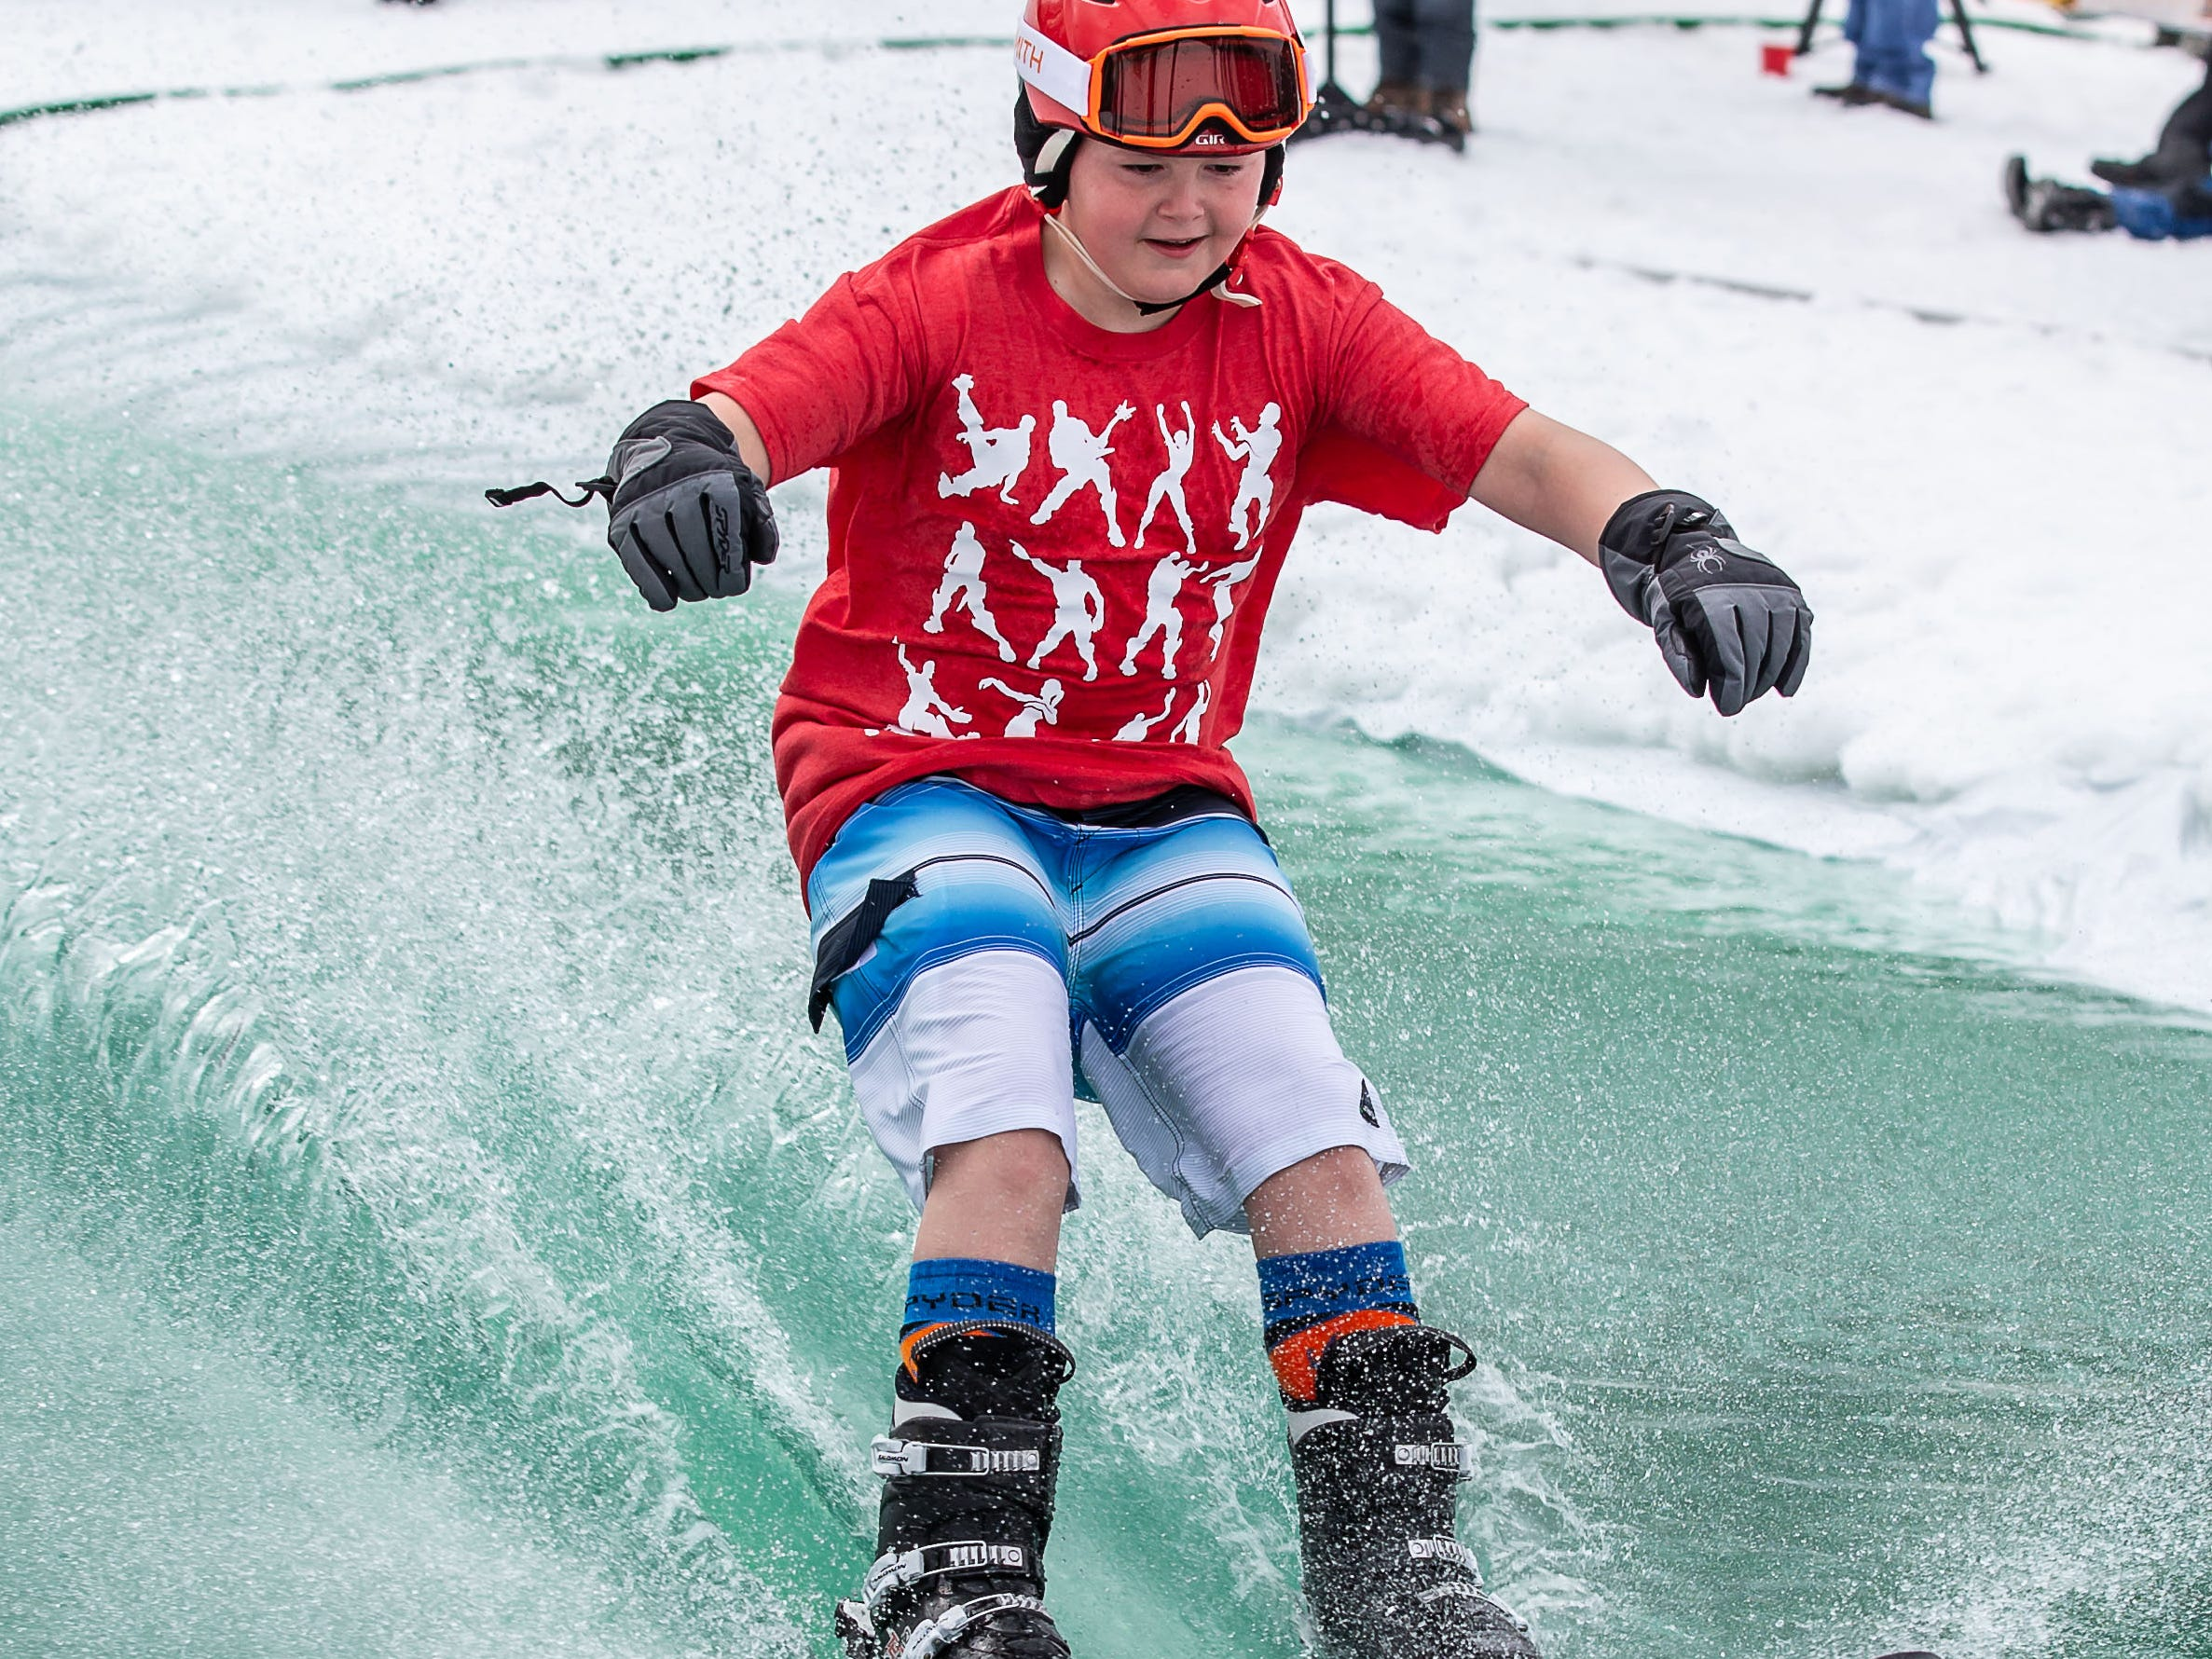 Charles Schwister, 11, of North Lake makes a successful run during the 2nd annual Pond Skim at Ausblick Ski Hill in Sussex on Saturday, April 6, 2019. The pond skim is held on the last day of the season as club members celebrate another fun-filled year on the slopes.